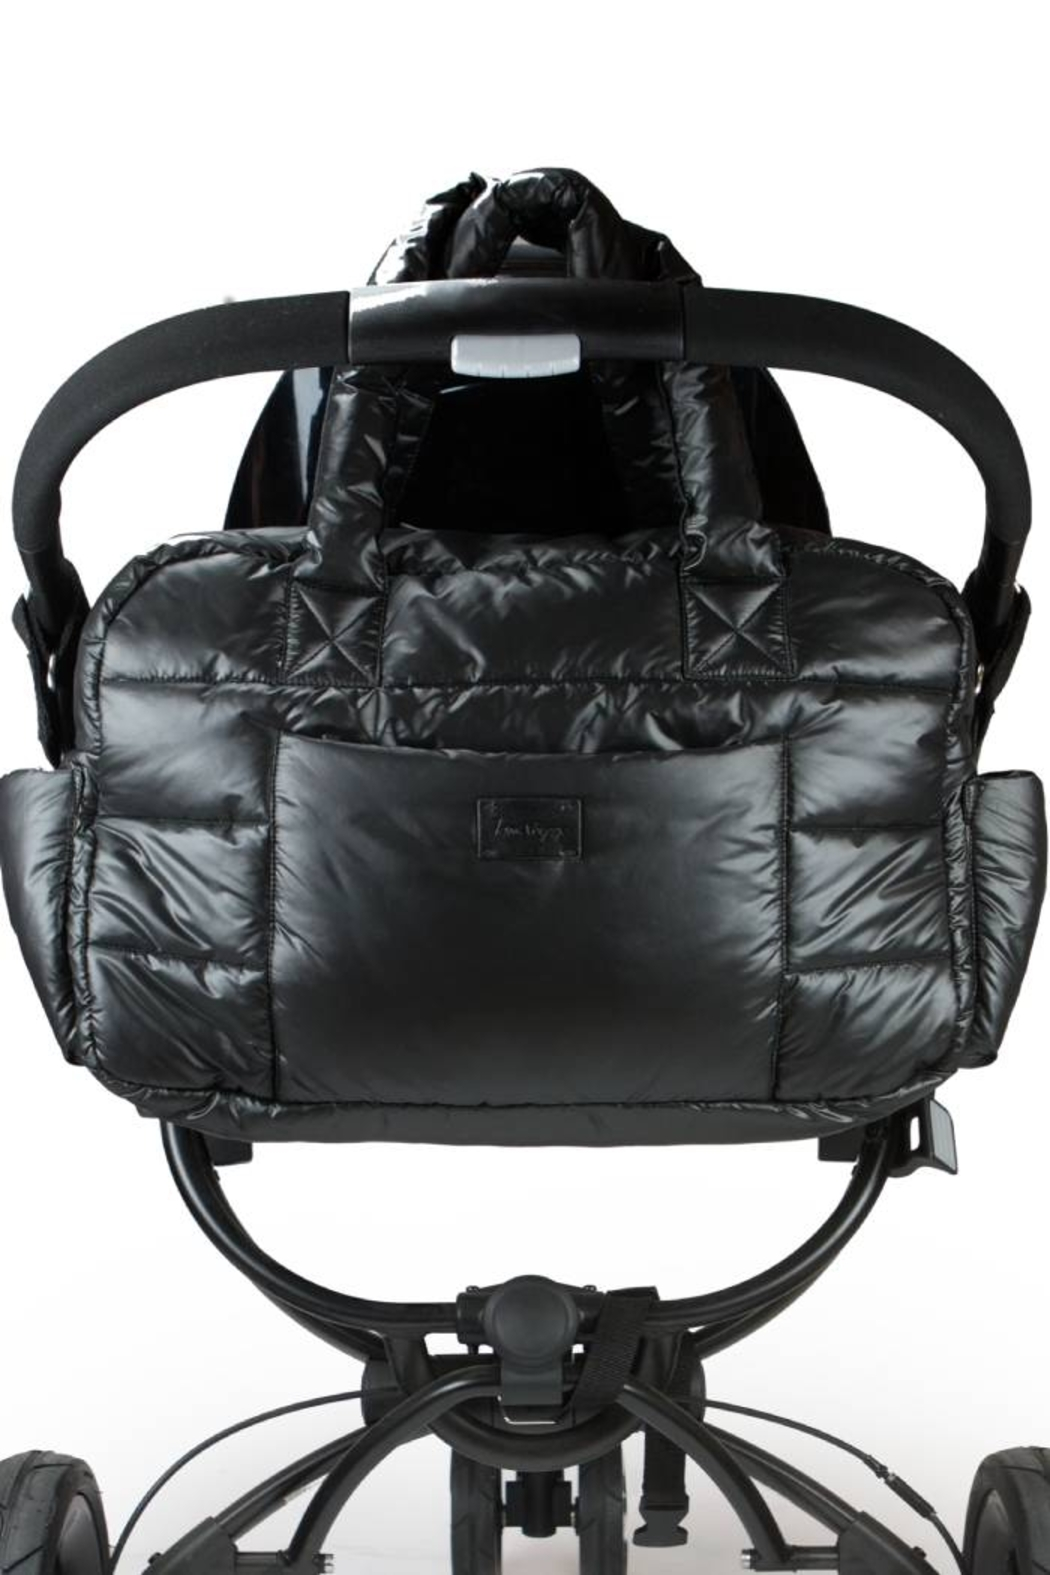 7AM Enfant 7 AM Enfant Premium Soho Satchel Diaper Bag for Fashionable Mothers - Side Cropped Image